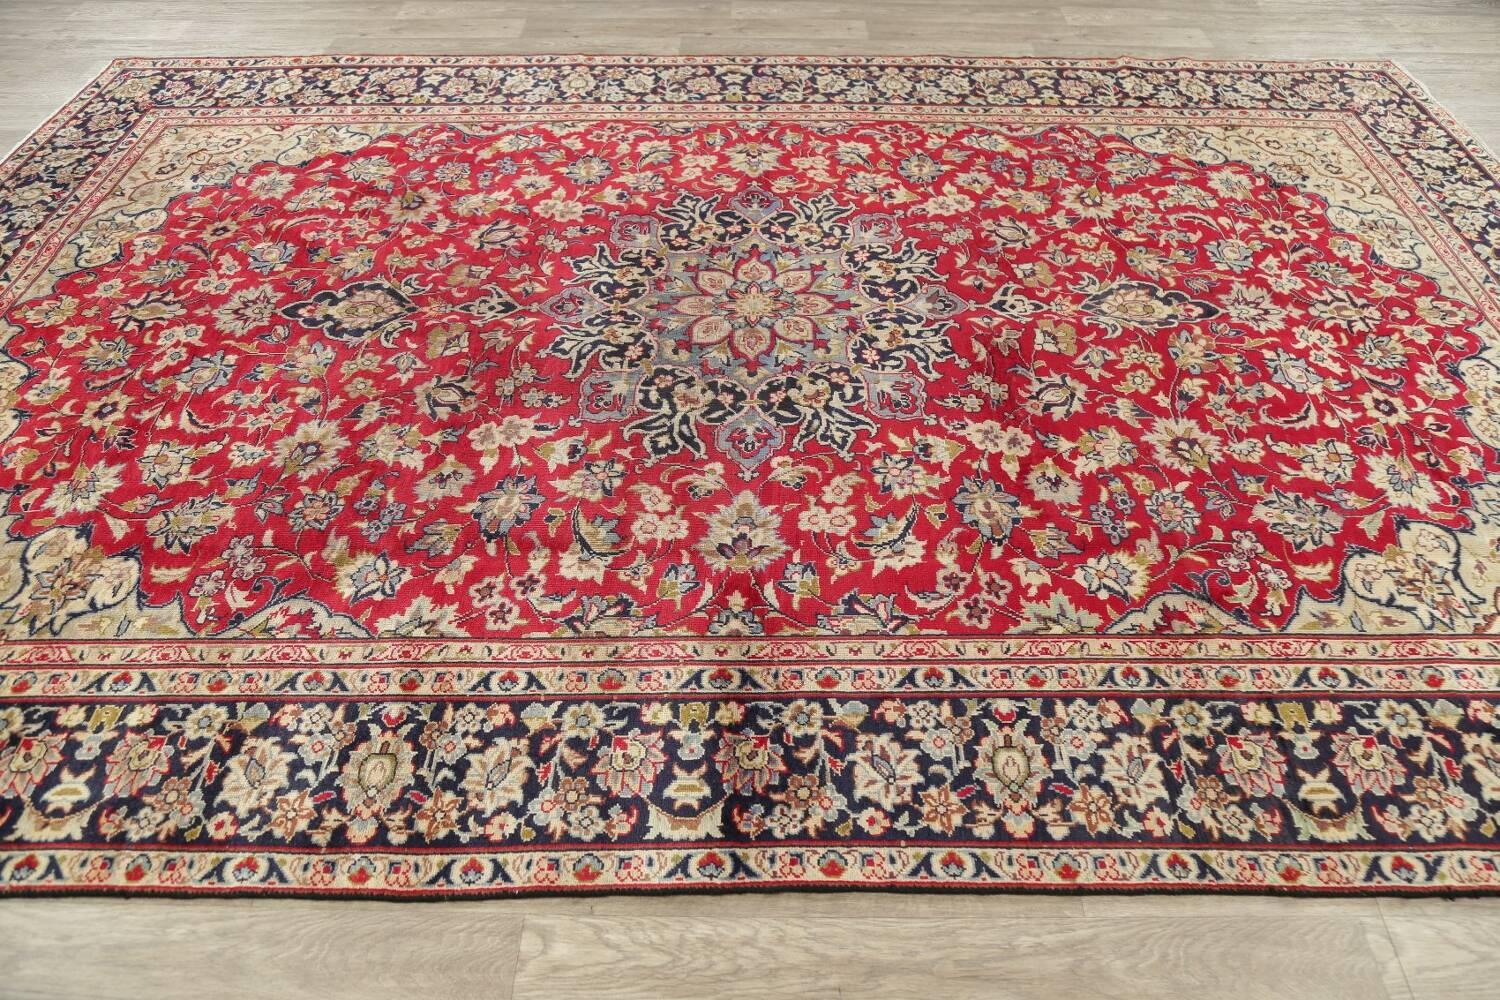 Vintage Floral Red Najafabad Persian Area Rug 8x12 image 17